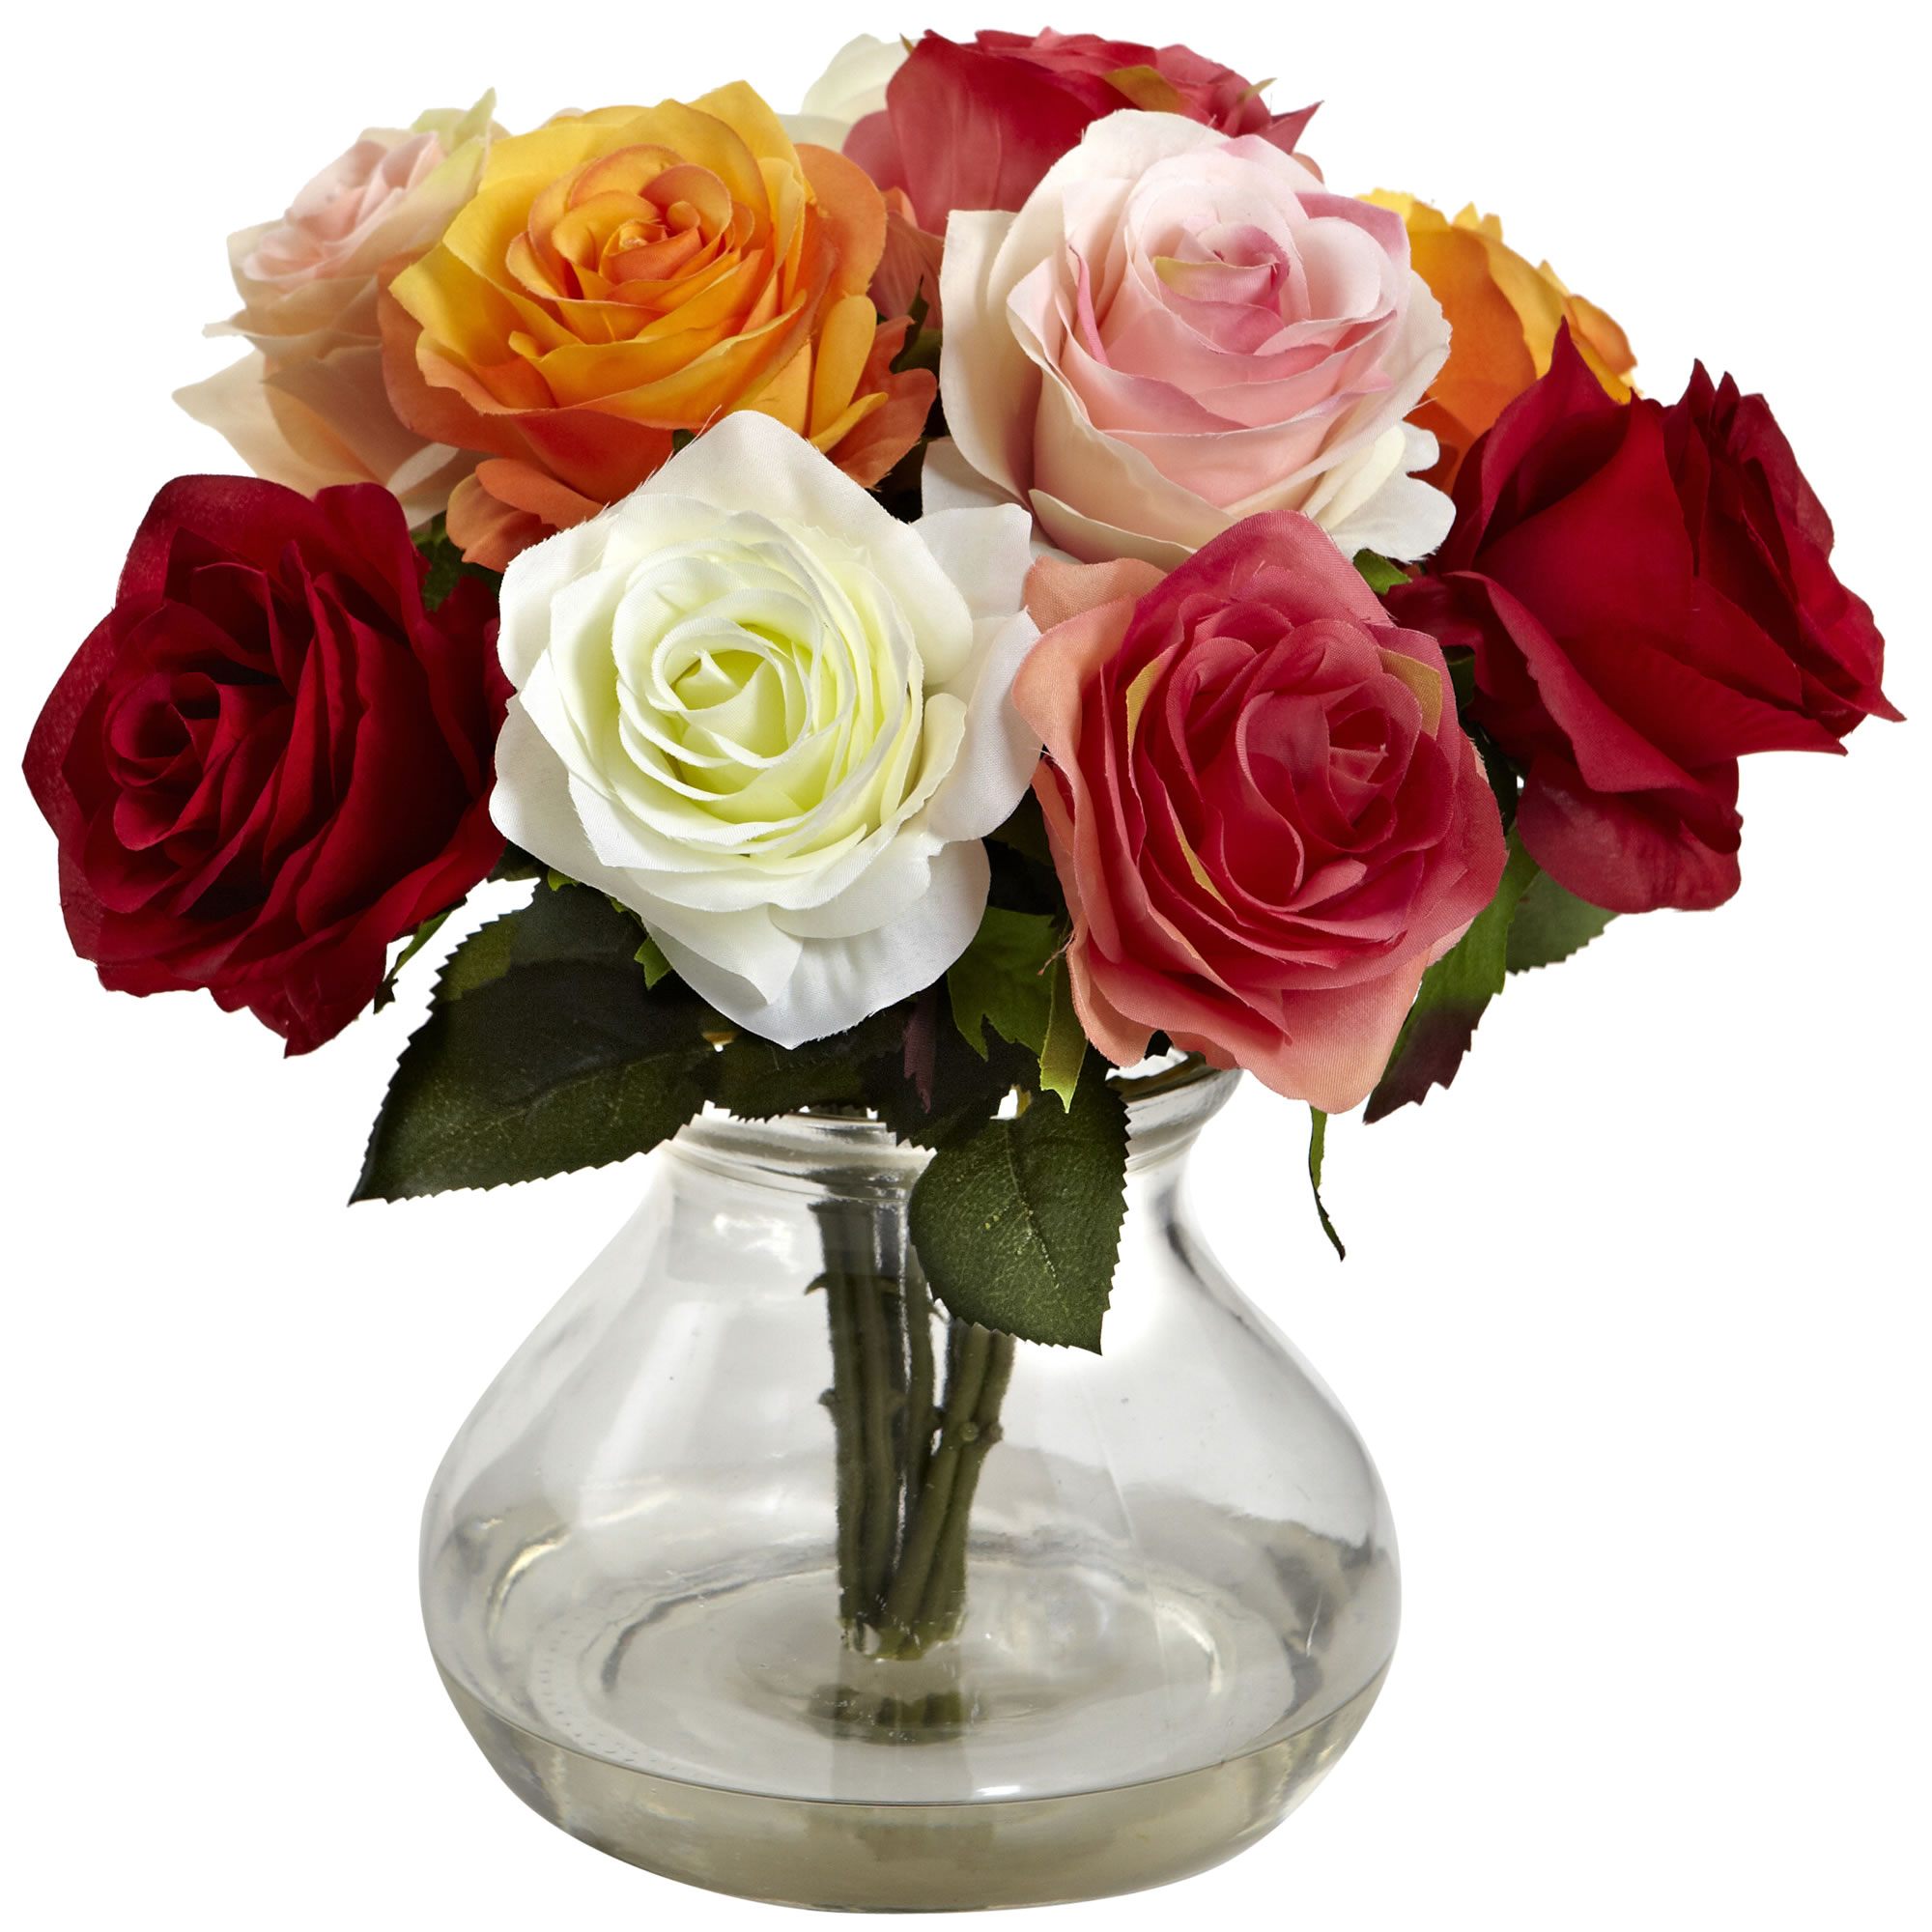 Rose Arrangement w/Vase - SKU #1367